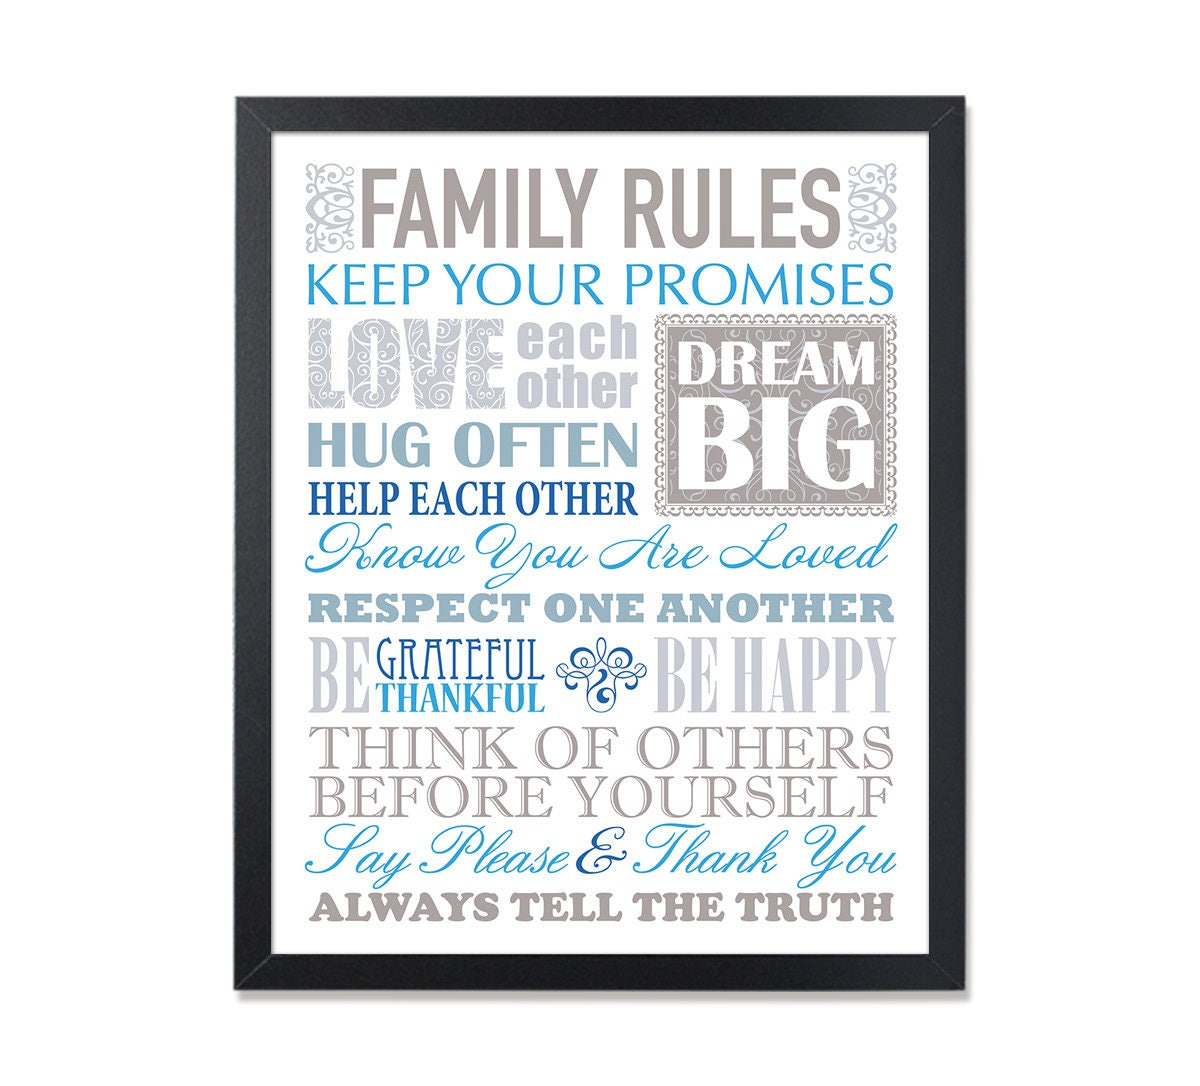 Our Family Rules House Rules Life Quote Life Rules Family